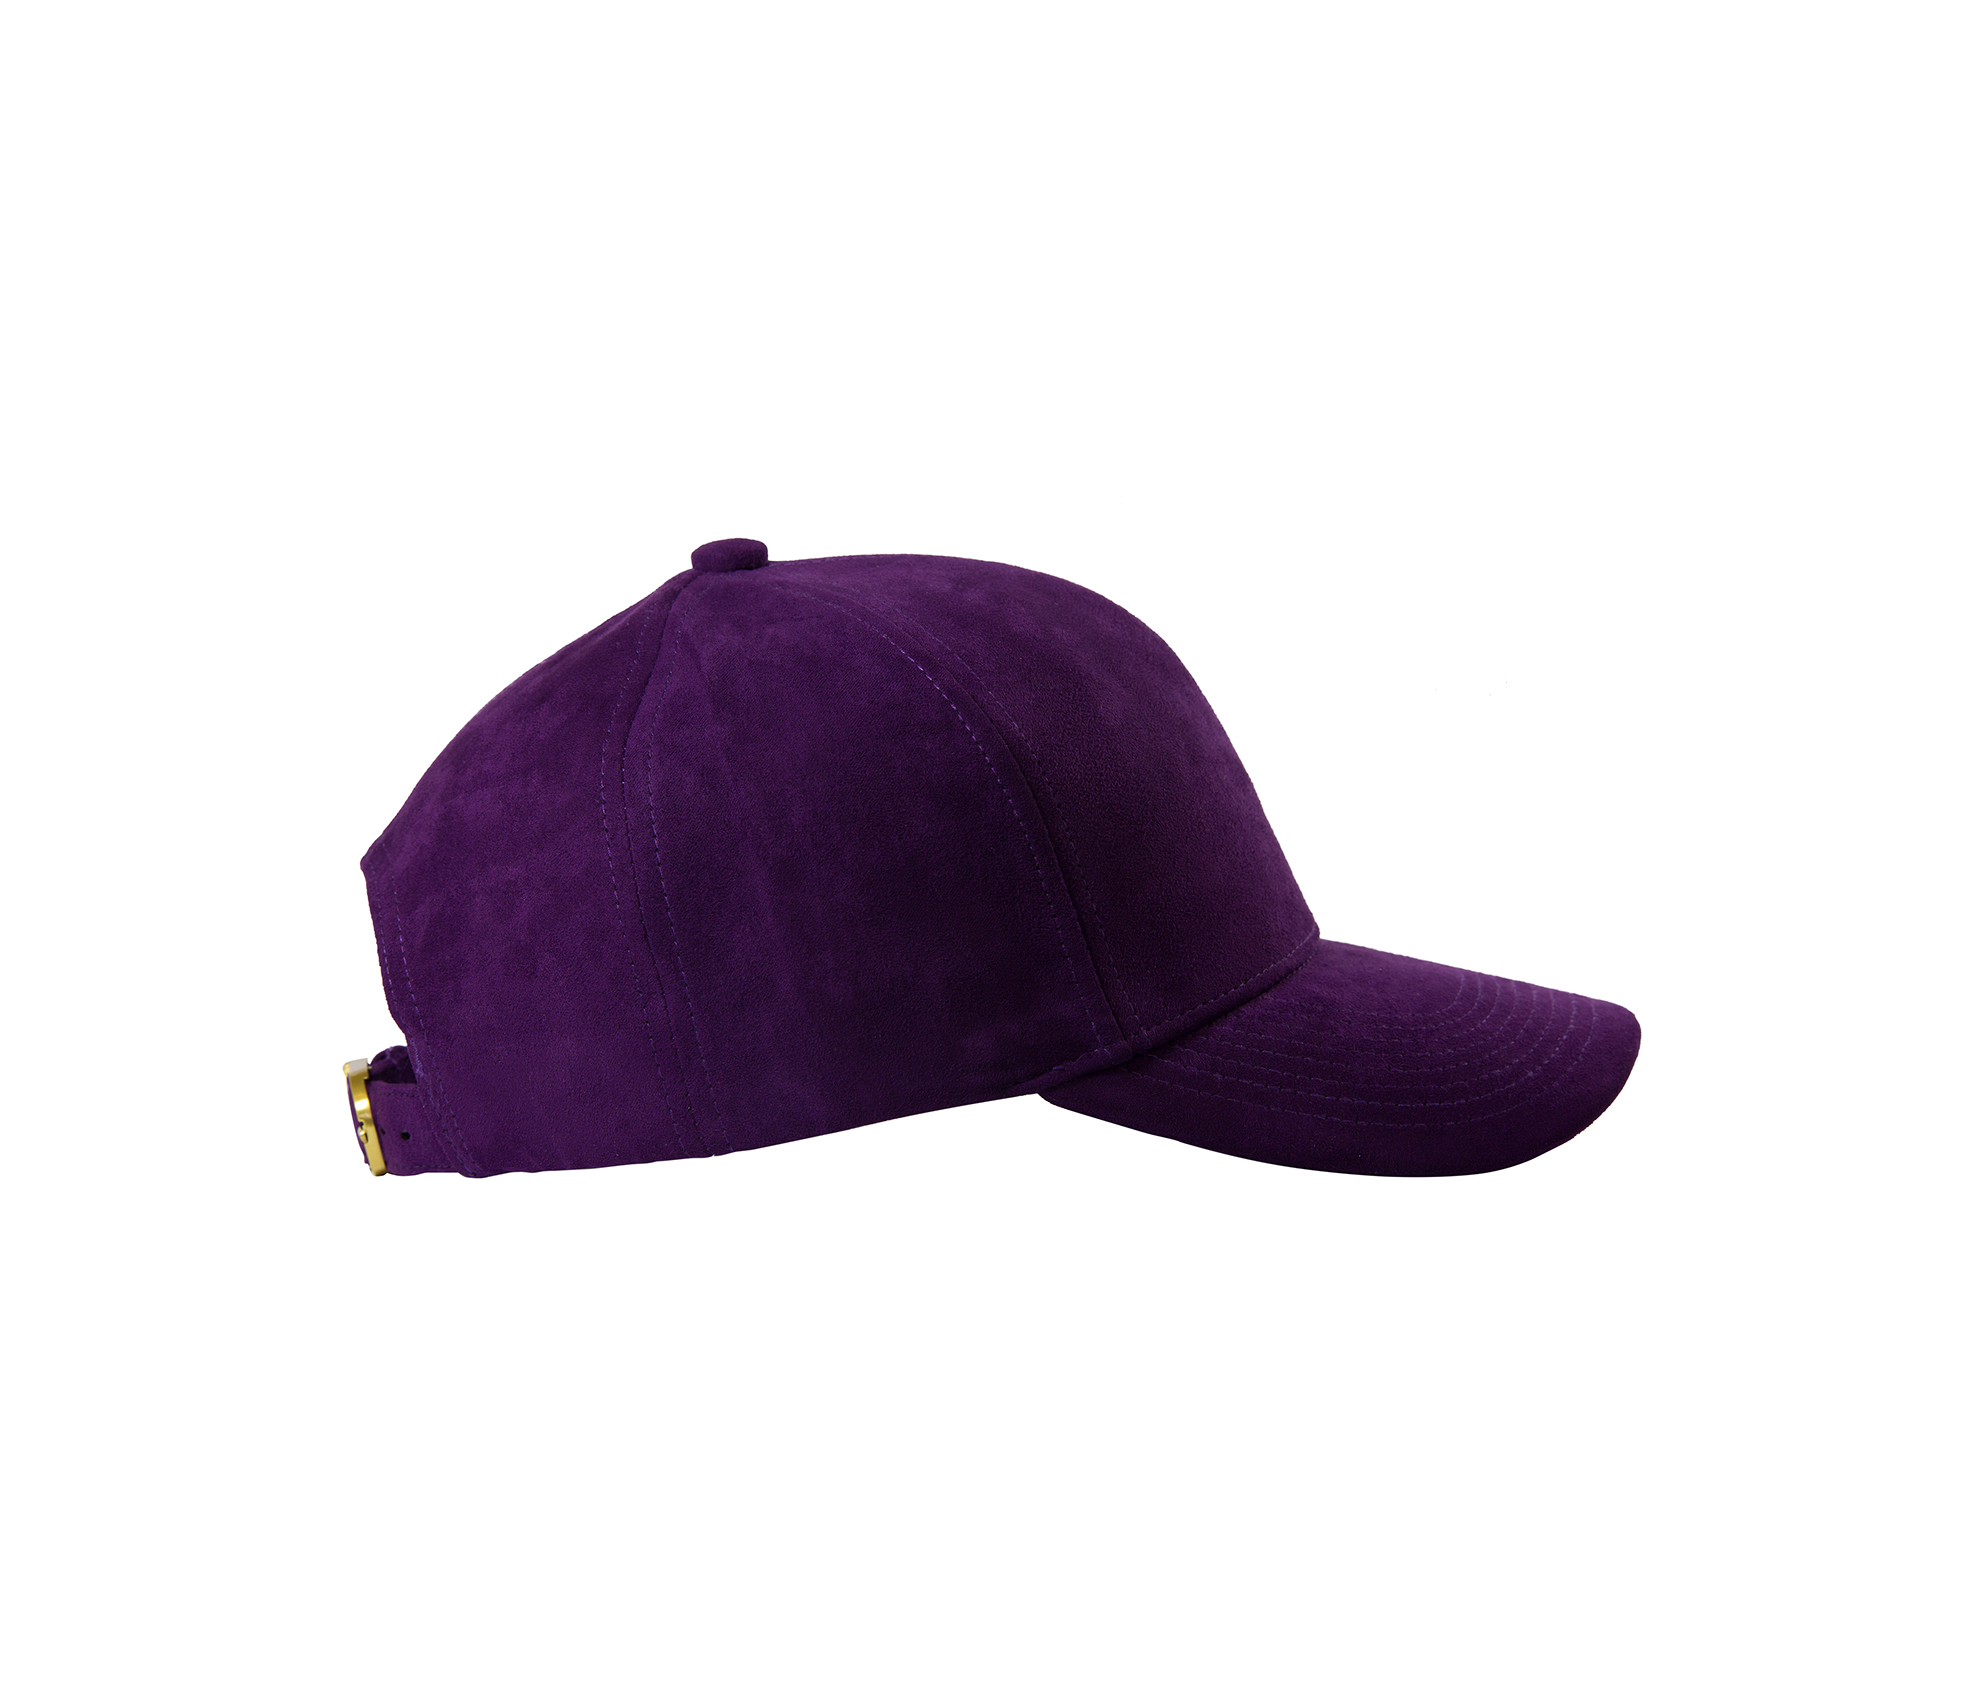 BASEBALL CAP VIOLET SUEDE GOLD SIDE